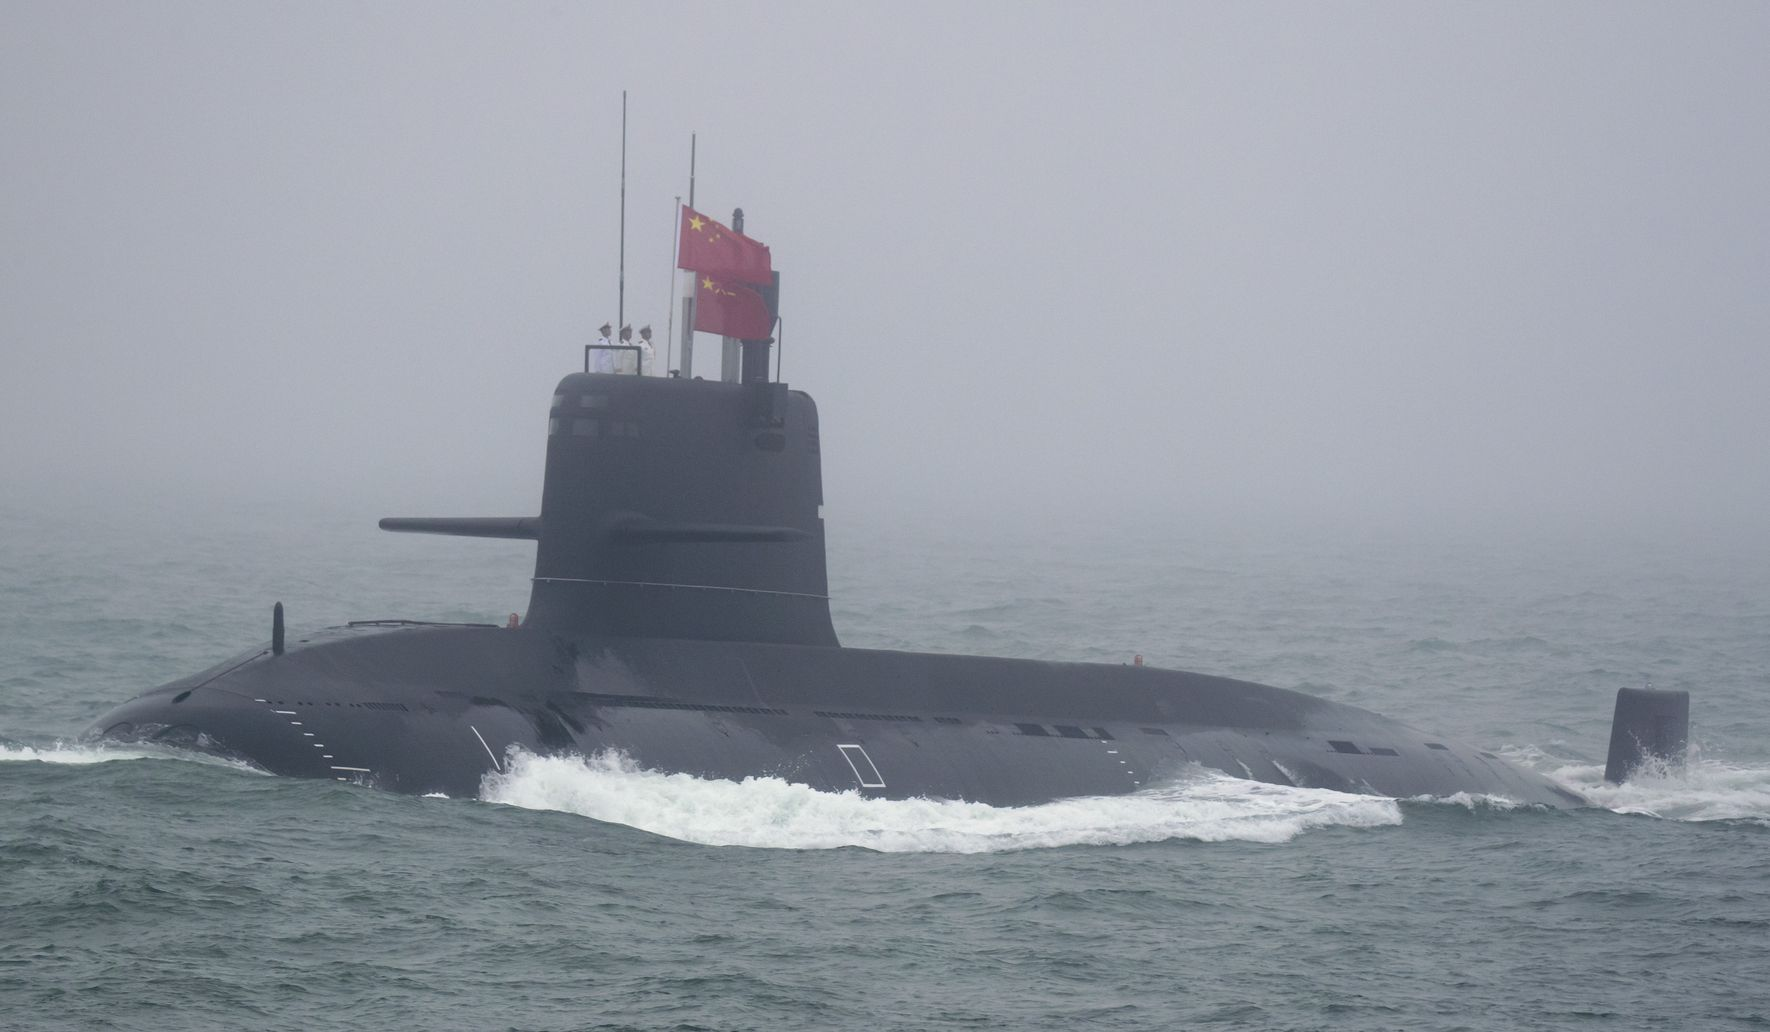 'Chilling': China's test of submarine-launched missile presents a threat to world peace